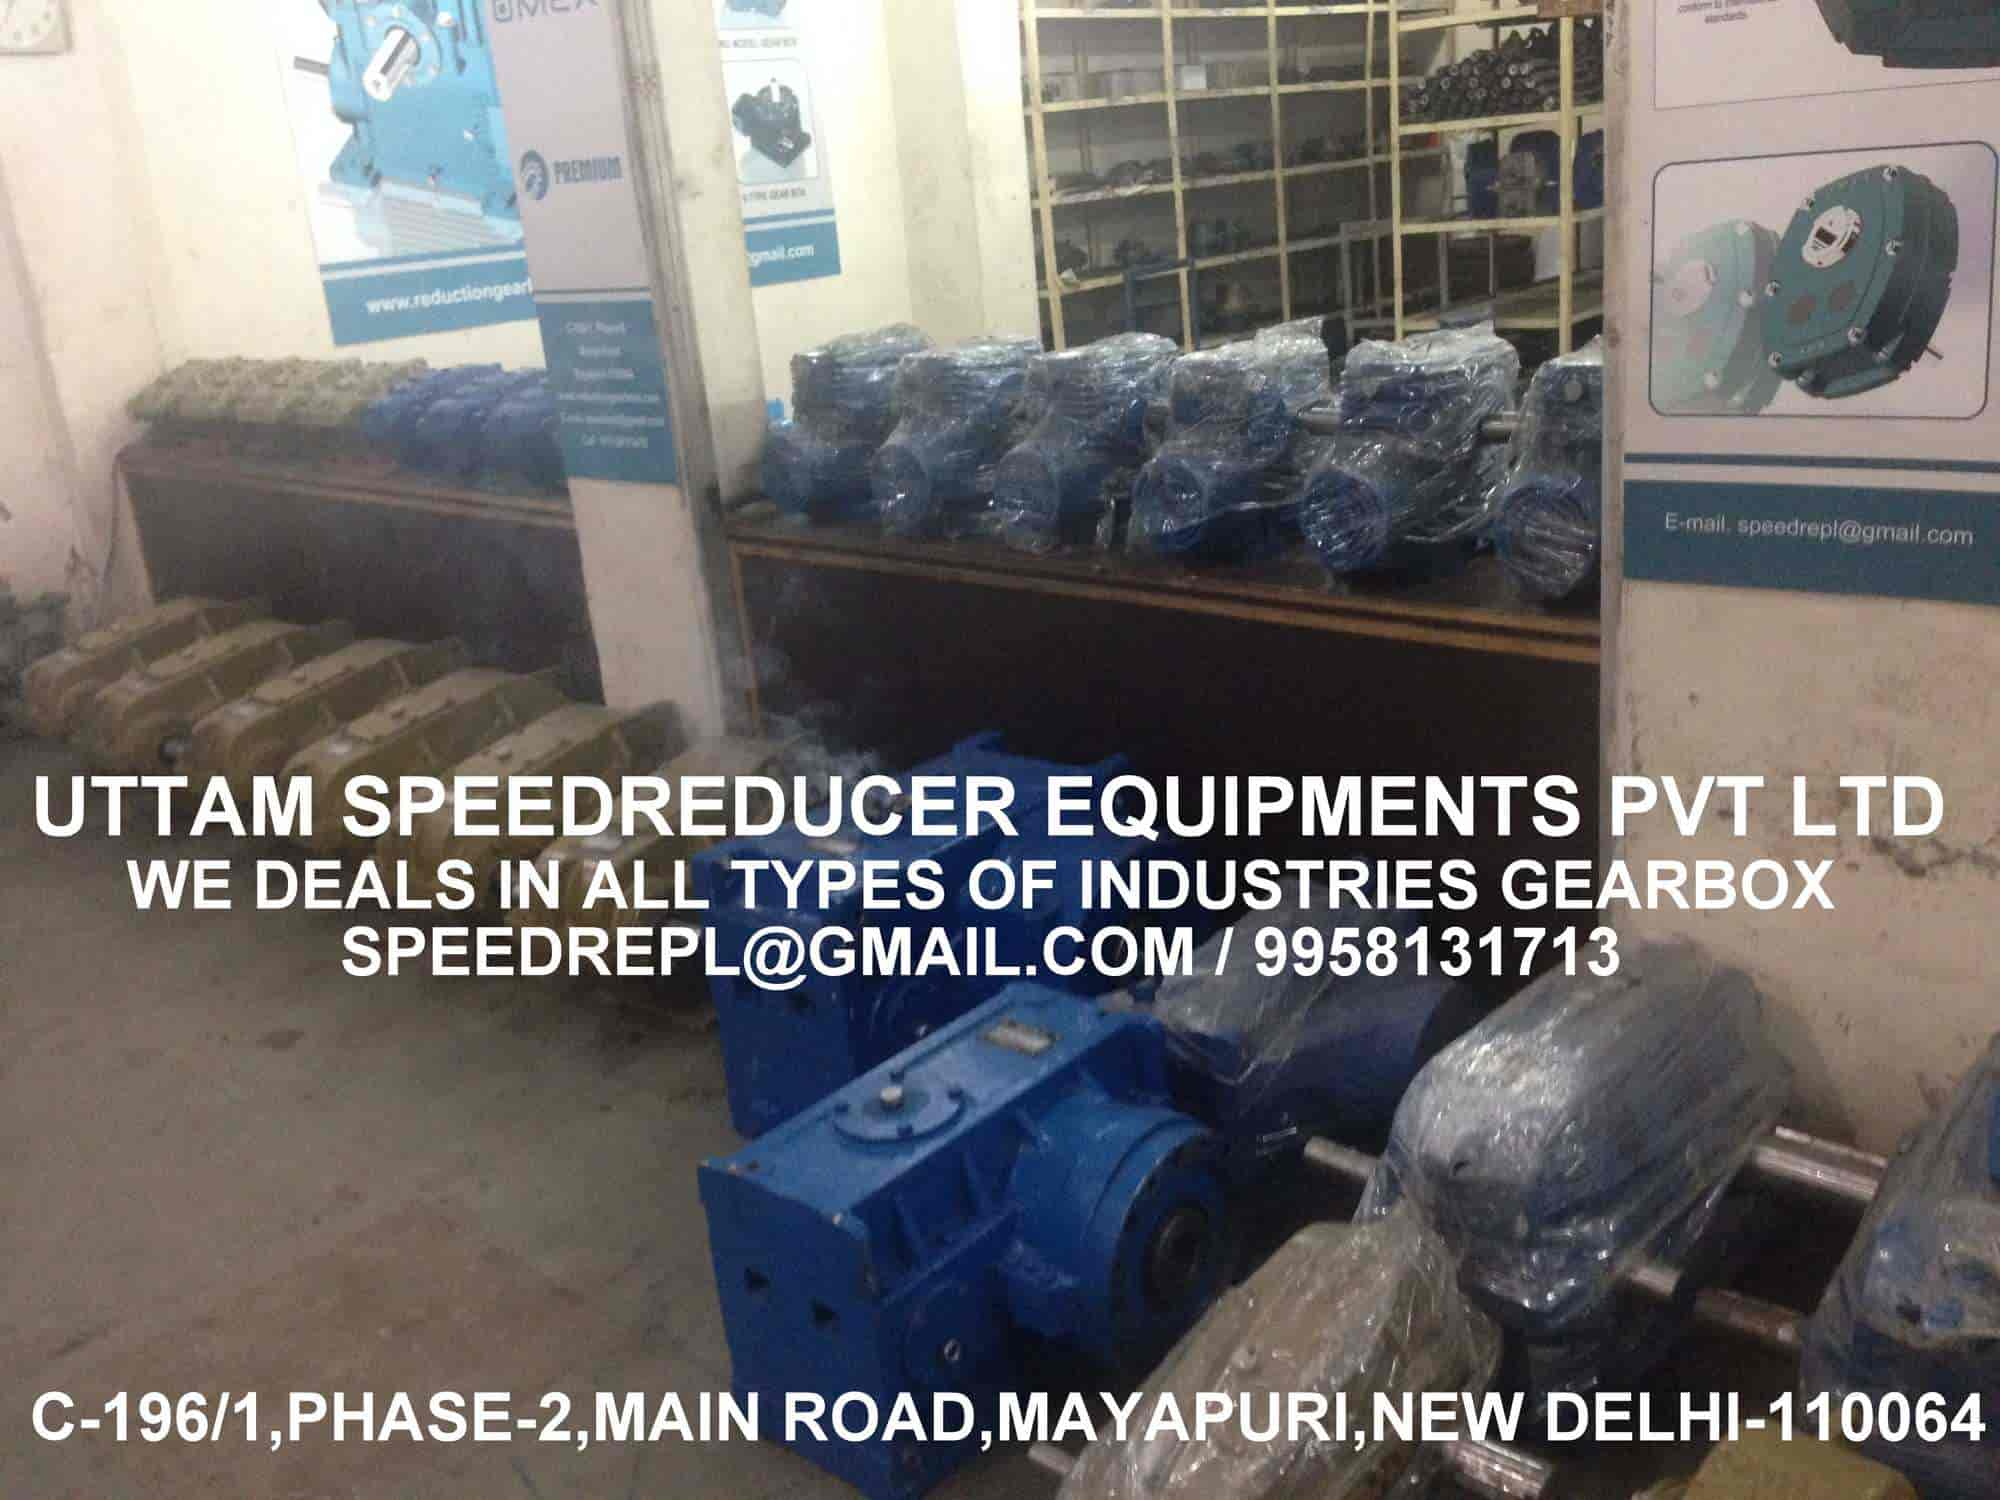 Uttam Speed Reducers Equipments Pvt Ltd, Mayapuri Industrial